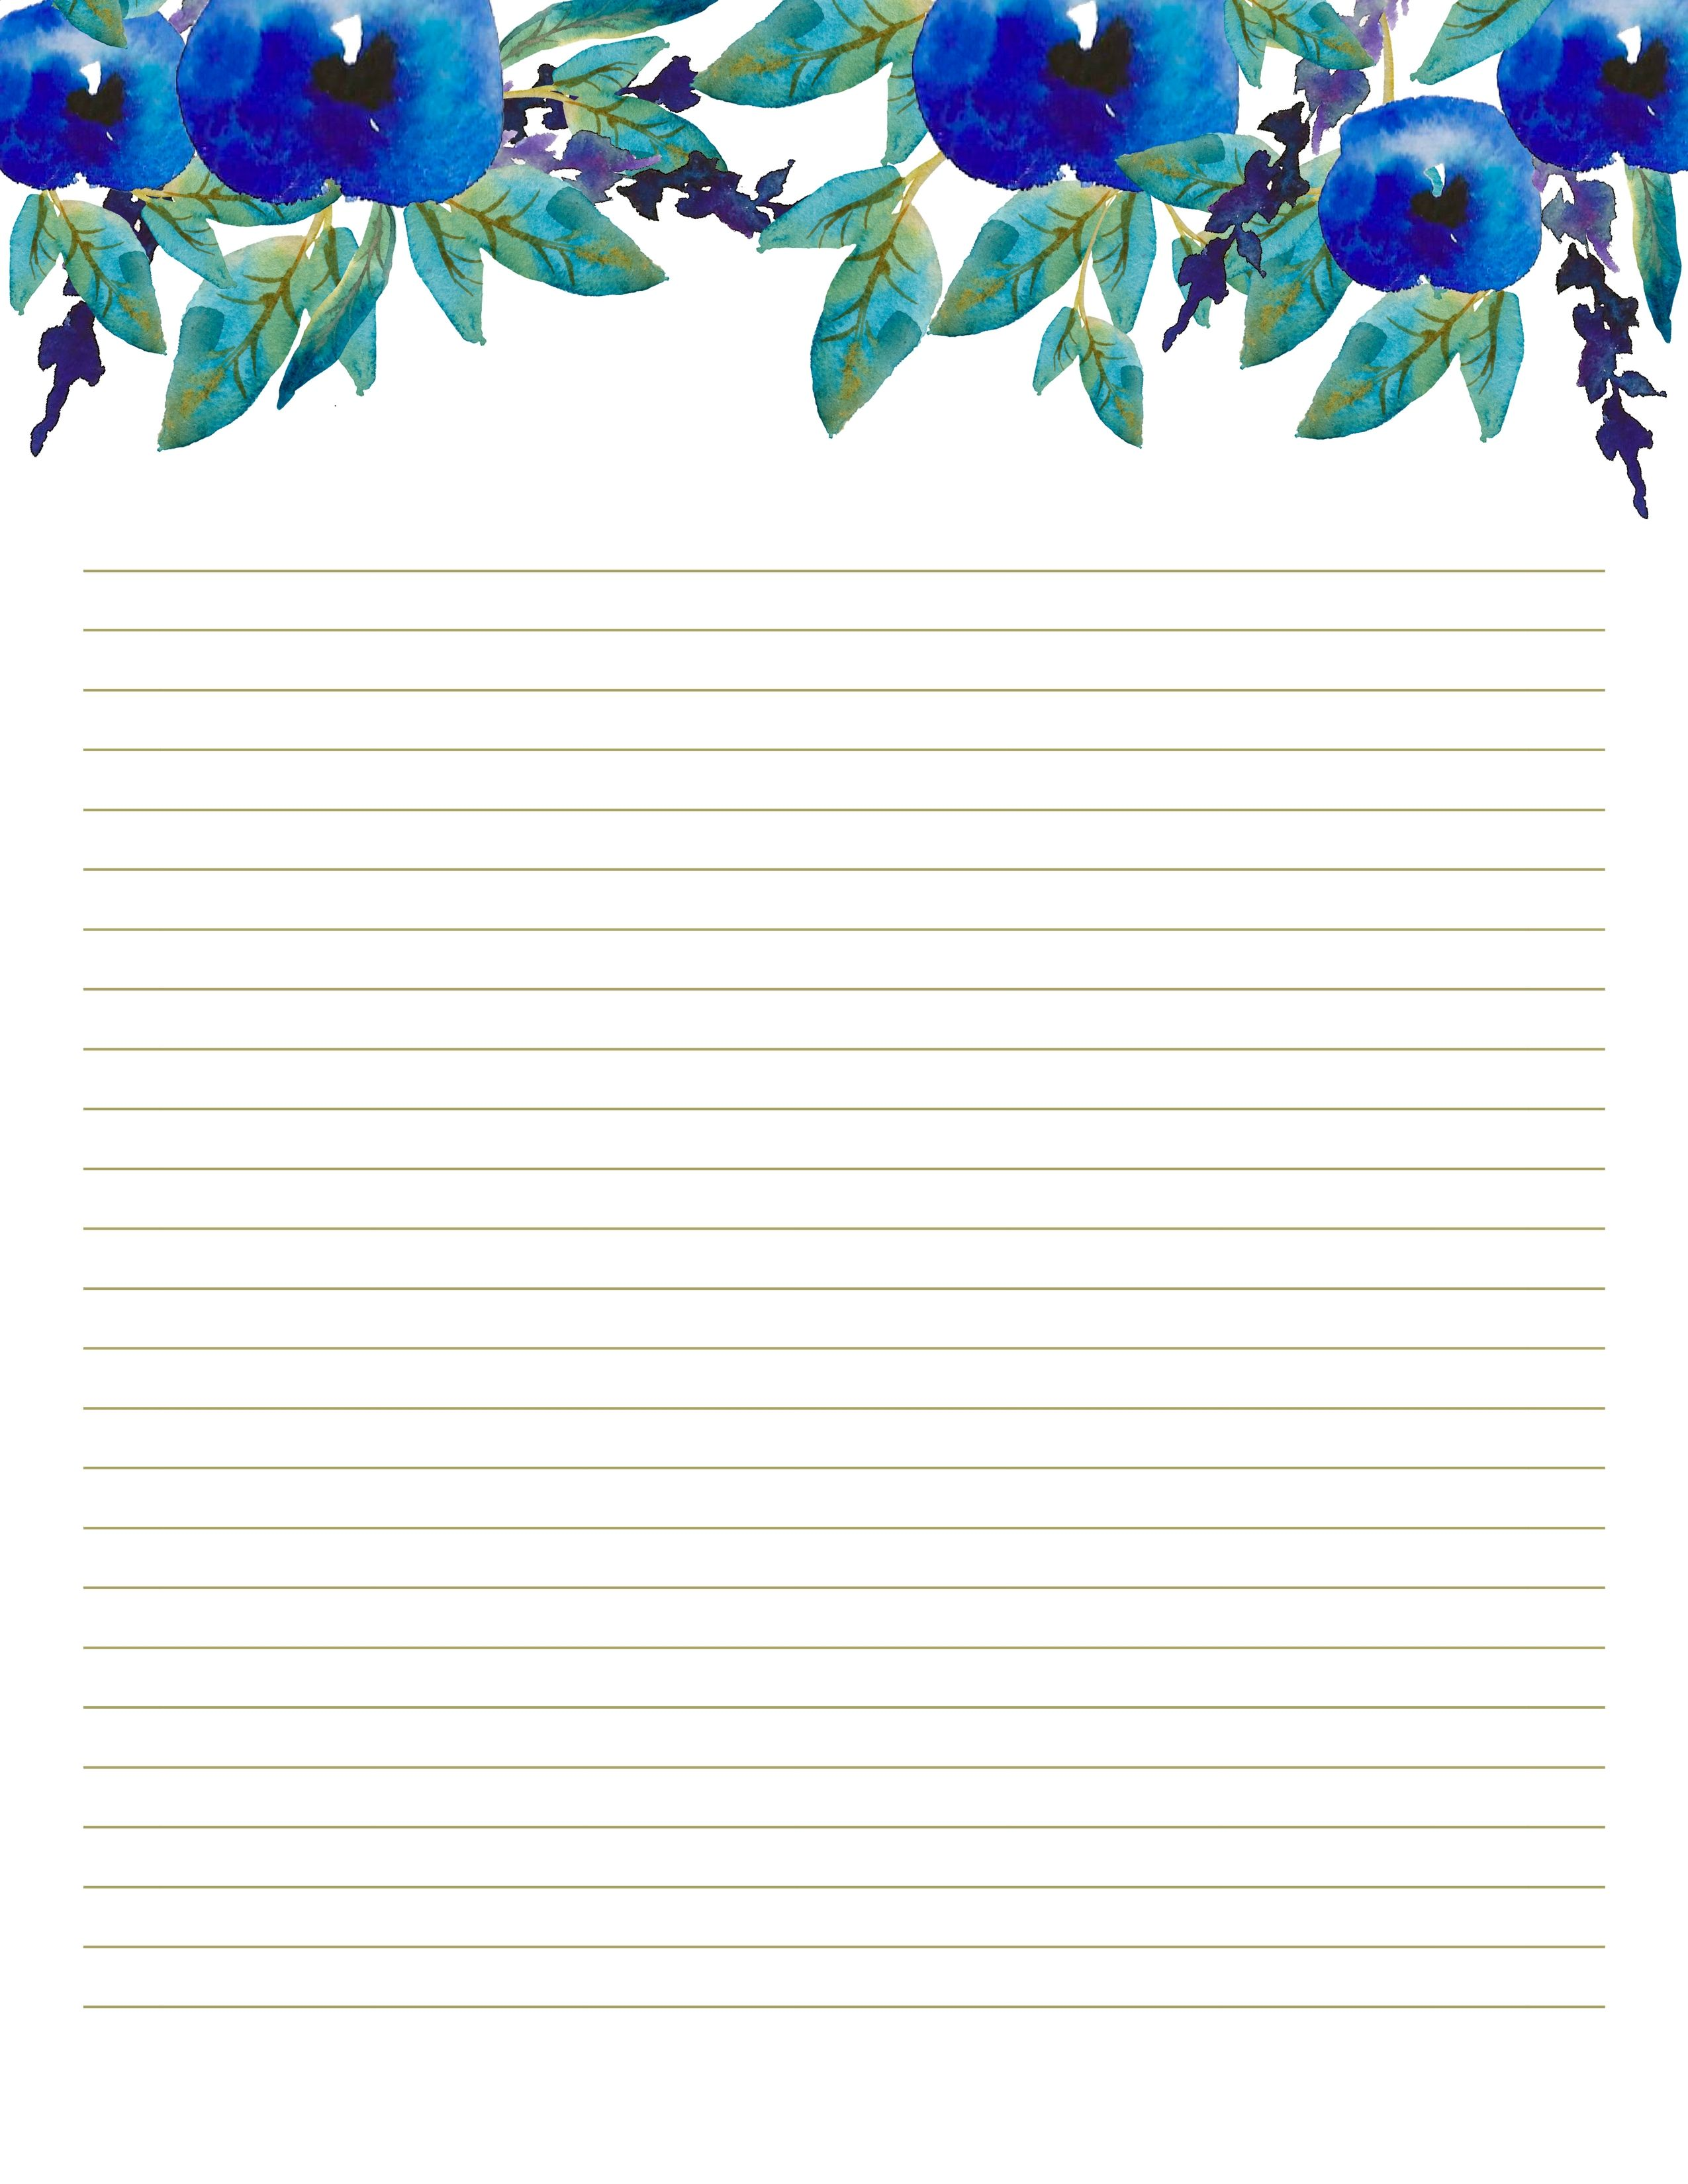 Floral Writing Paper Printables Letter Paper 8 5 X 11 In Etsy In 2021 Writing Paper Printable Stationery Writing Paper Printable Free Printable Stationery